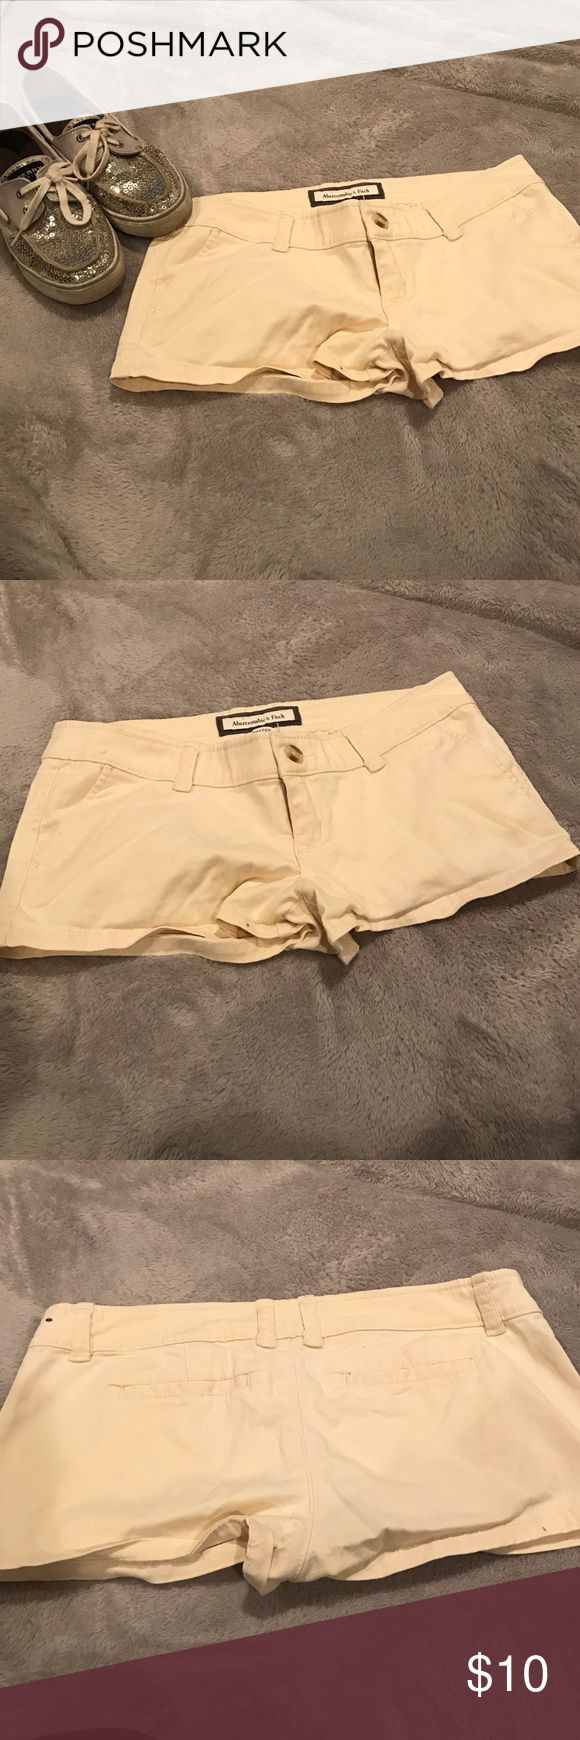 Abercrombie and Fitch short shorts Daisy dukes from Abercrombie and Fitch worn size 2 stretch (Sperry shoes available in a separate listing) Abercrombie & Fitch Shorts